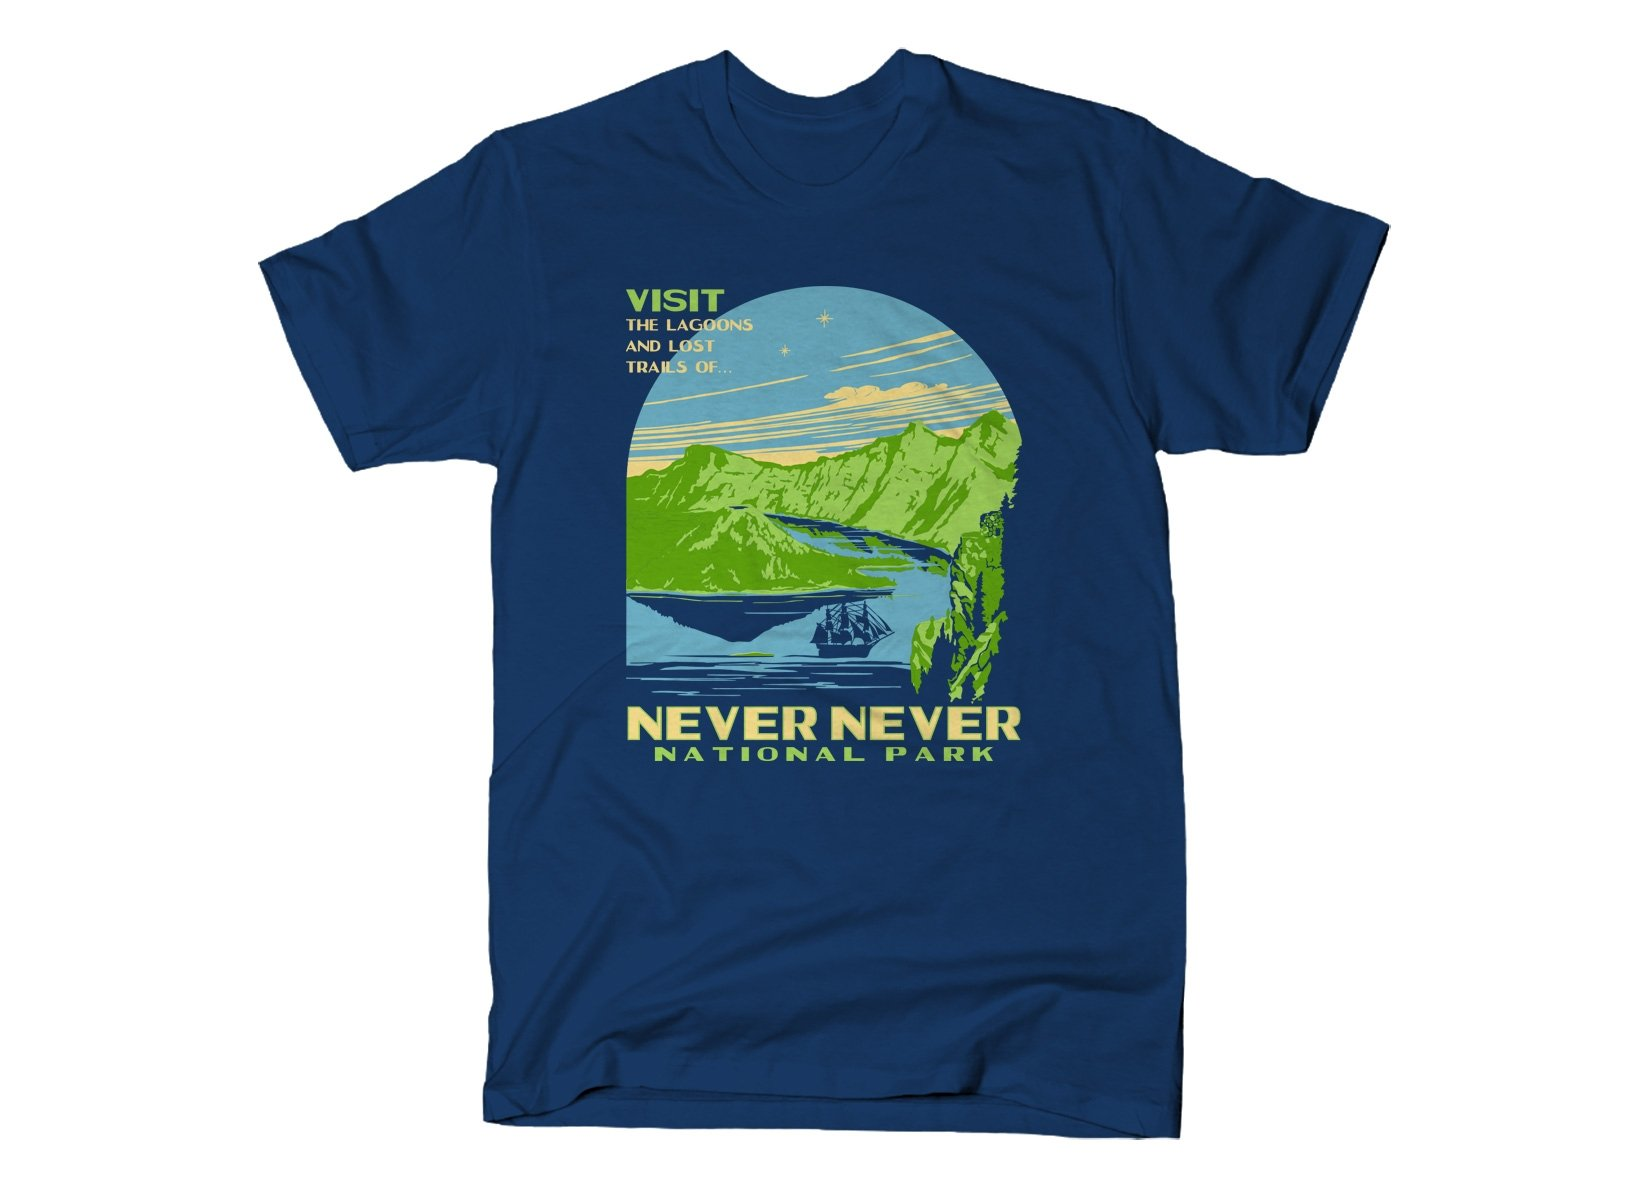 Never Never National Park on Mens T-Shirt